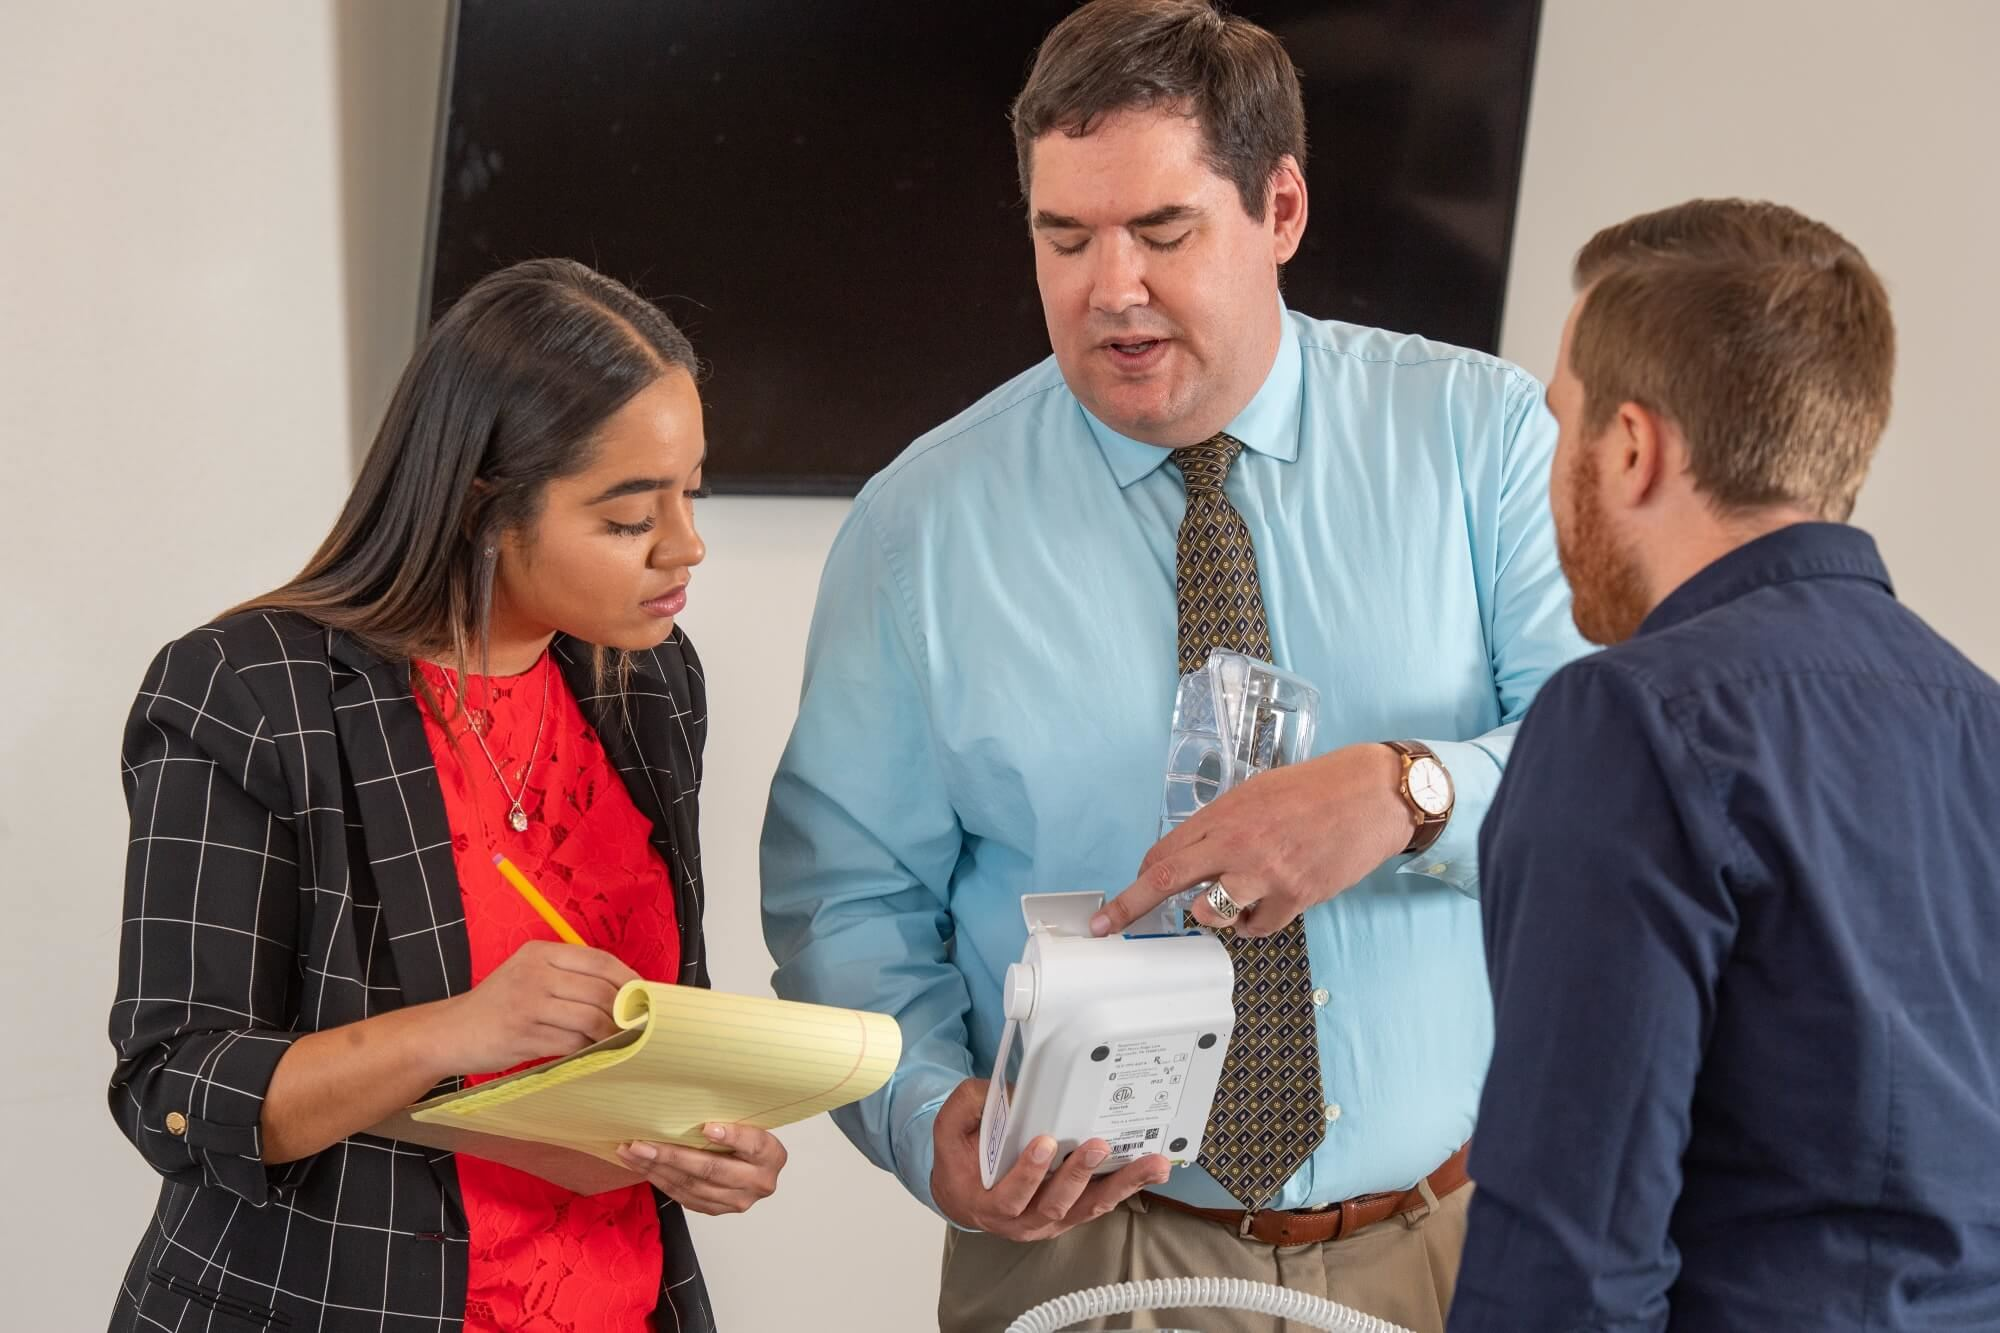 Product Liability Defense Attorneys Defective Product Defense Lawyers